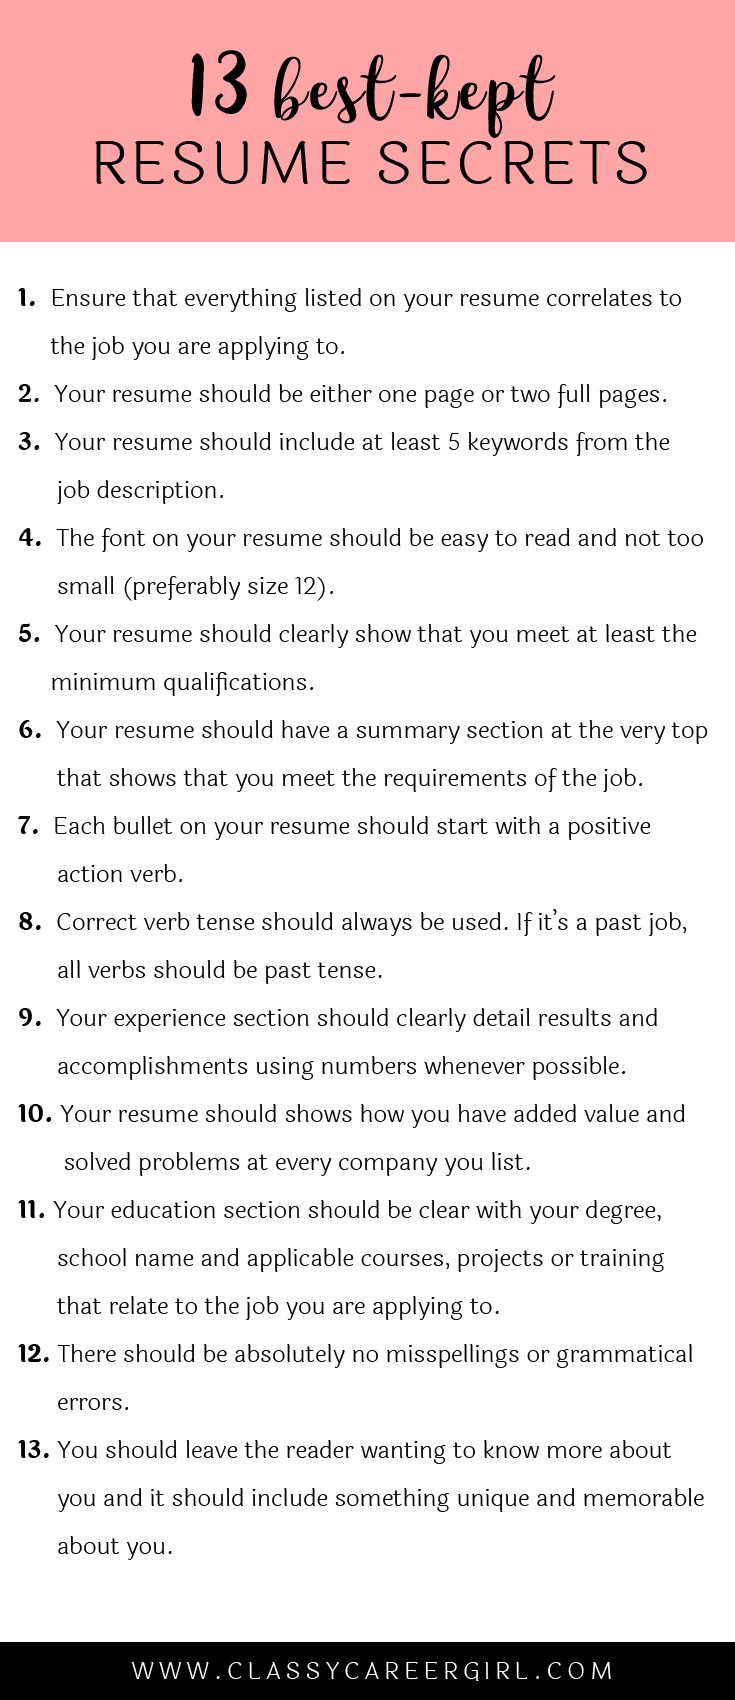 Opposenewapstandardsus  Pretty  Ideas About Resume On Pinterest  Cv Format Resume Cv And  With Exquisite Some Hiring Managers Will Toss Your Resume Out If You Dont Know These  With Delectable How Do I Build A Resume Also Research Technician Resume In Addition Sample Resume Project Manager And Unix Resume As Well As Resume Of A Teacher Additionally Technical Skills On A Resume From Pinterestcom With Opposenewapstandardsus  Exquisite  Ideas About Resume On Pinterest  Cv Format Resume Cv And  With Delectable Some Hiring Managers Will Toss Your Resume Out If You Dont Know These  And Pretty How Do I Build A Resume Also Research Technician Resume In Addition Sample Resume Project Manager From Pinterestcom